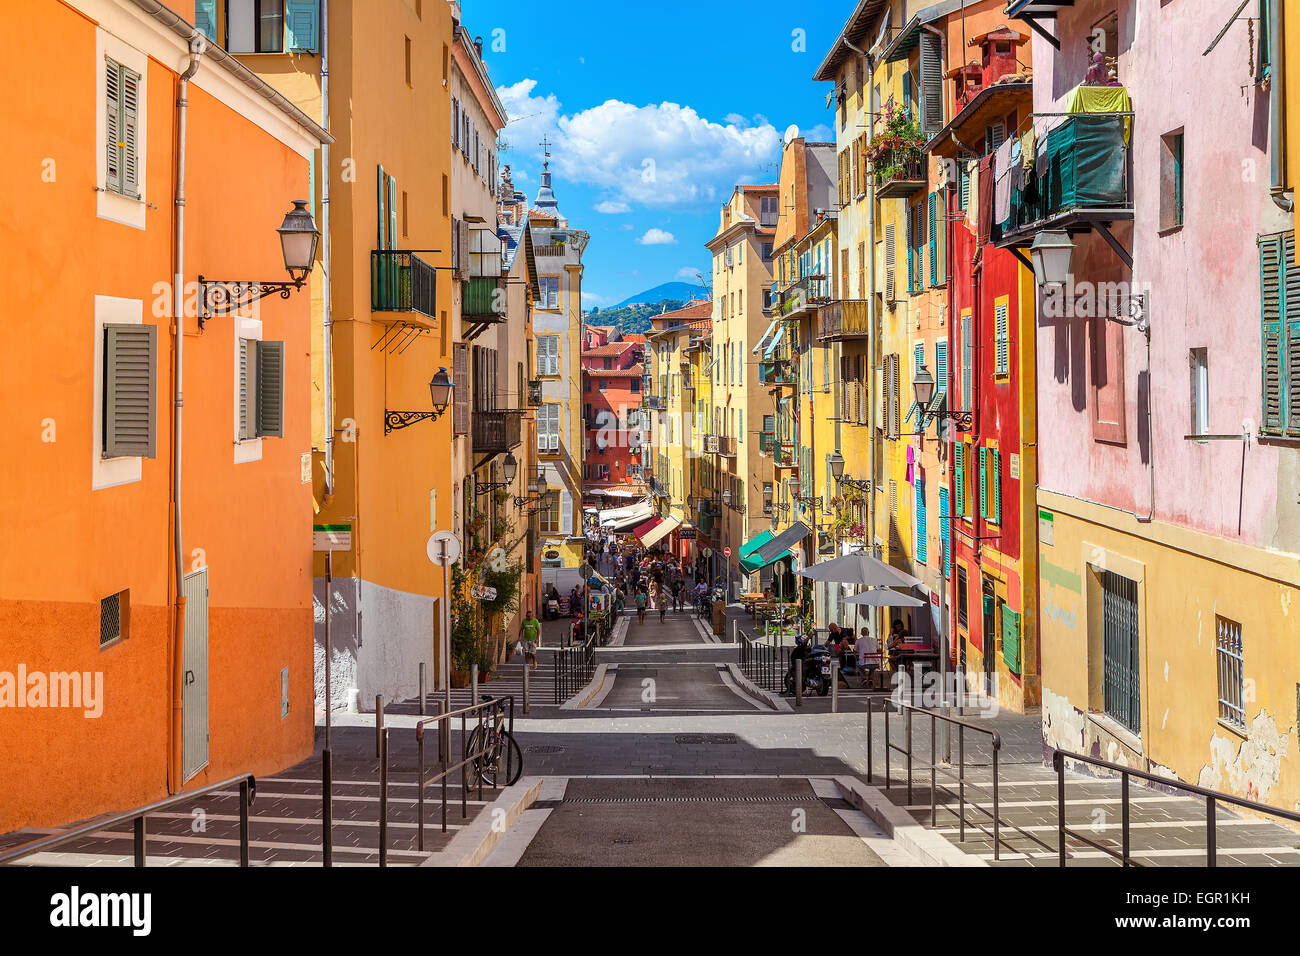 Narrow street in old tourist part of Nice, France. - Stock Image